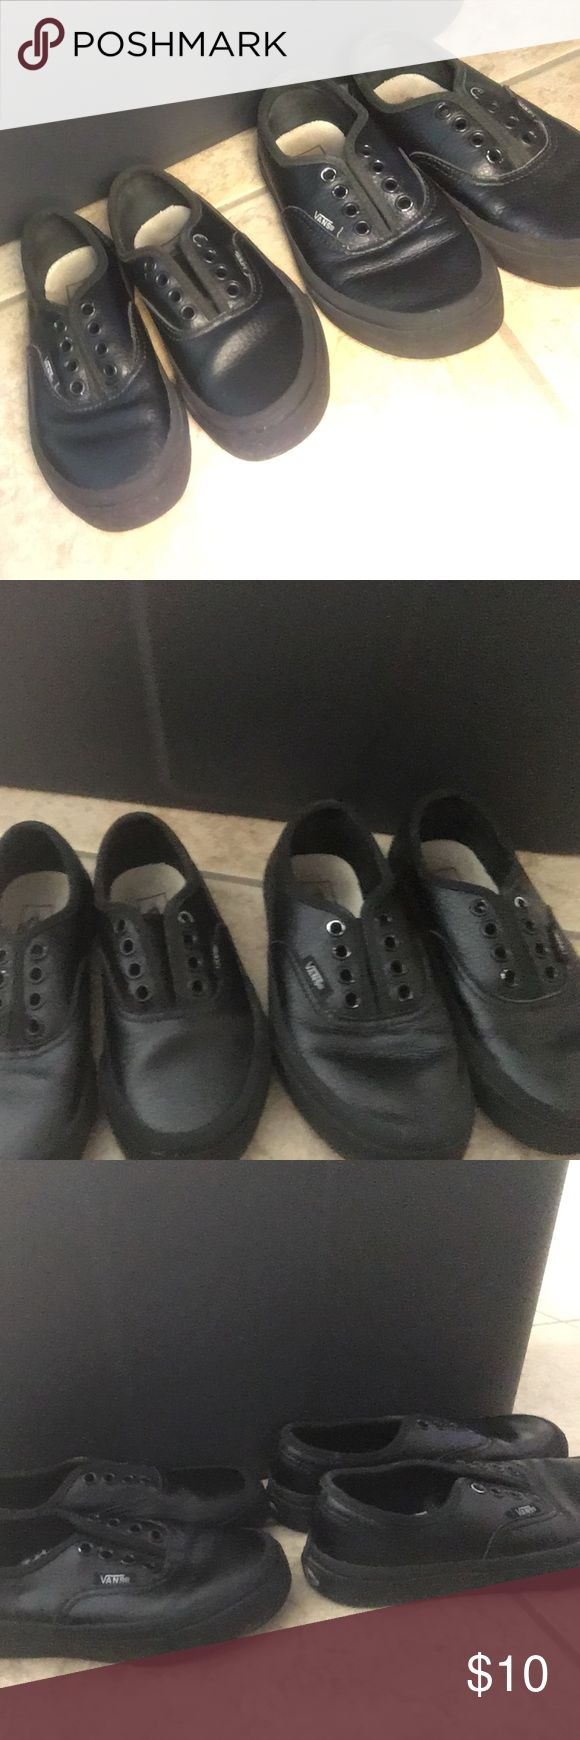 Kids black leather vans size 11 and 12 Used kids black leather vans size 11 and 12 don't have the laces Vans Shoes Sneakers